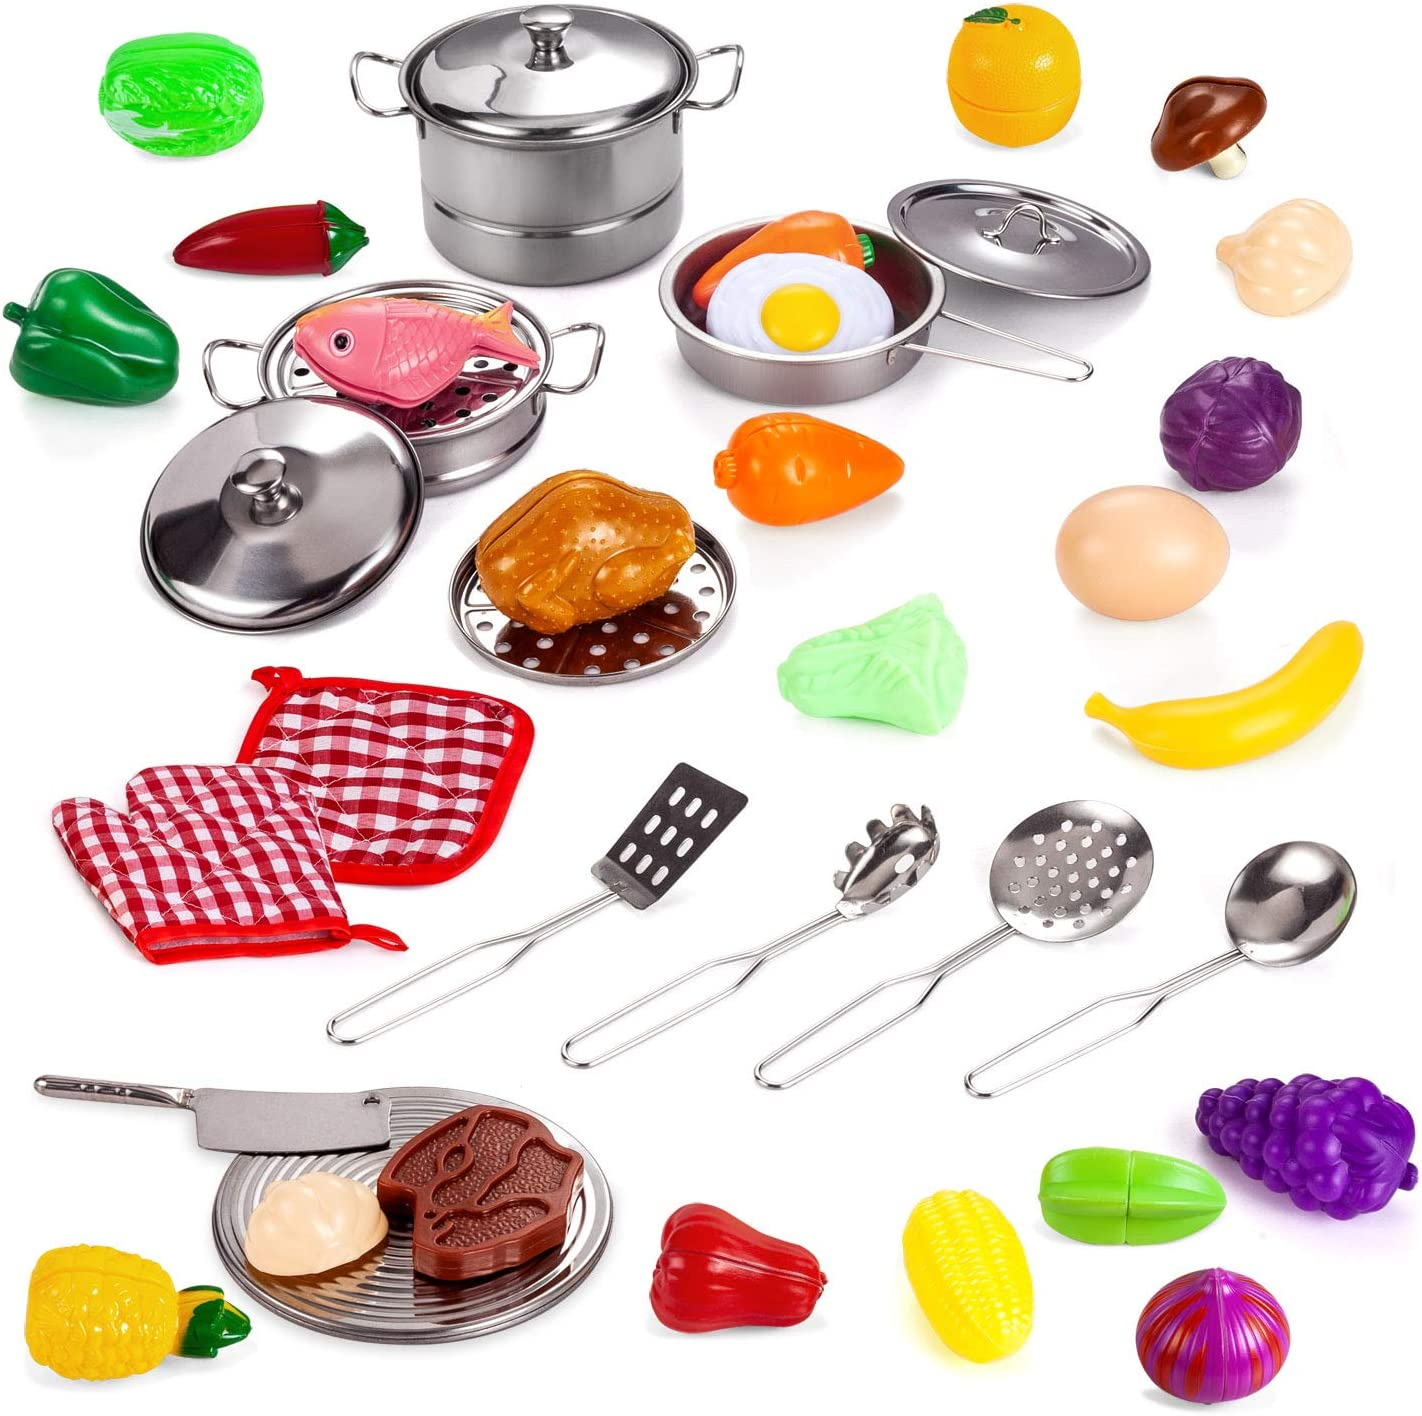 Tuko Kitchen Pretend Play Toys with Stainless Steel Cookware Pots and Pans Set, Cooking Utensils, Baking Glove & Rag, Cutting Vegetables for Kids, Girls, Boys, Toddlers